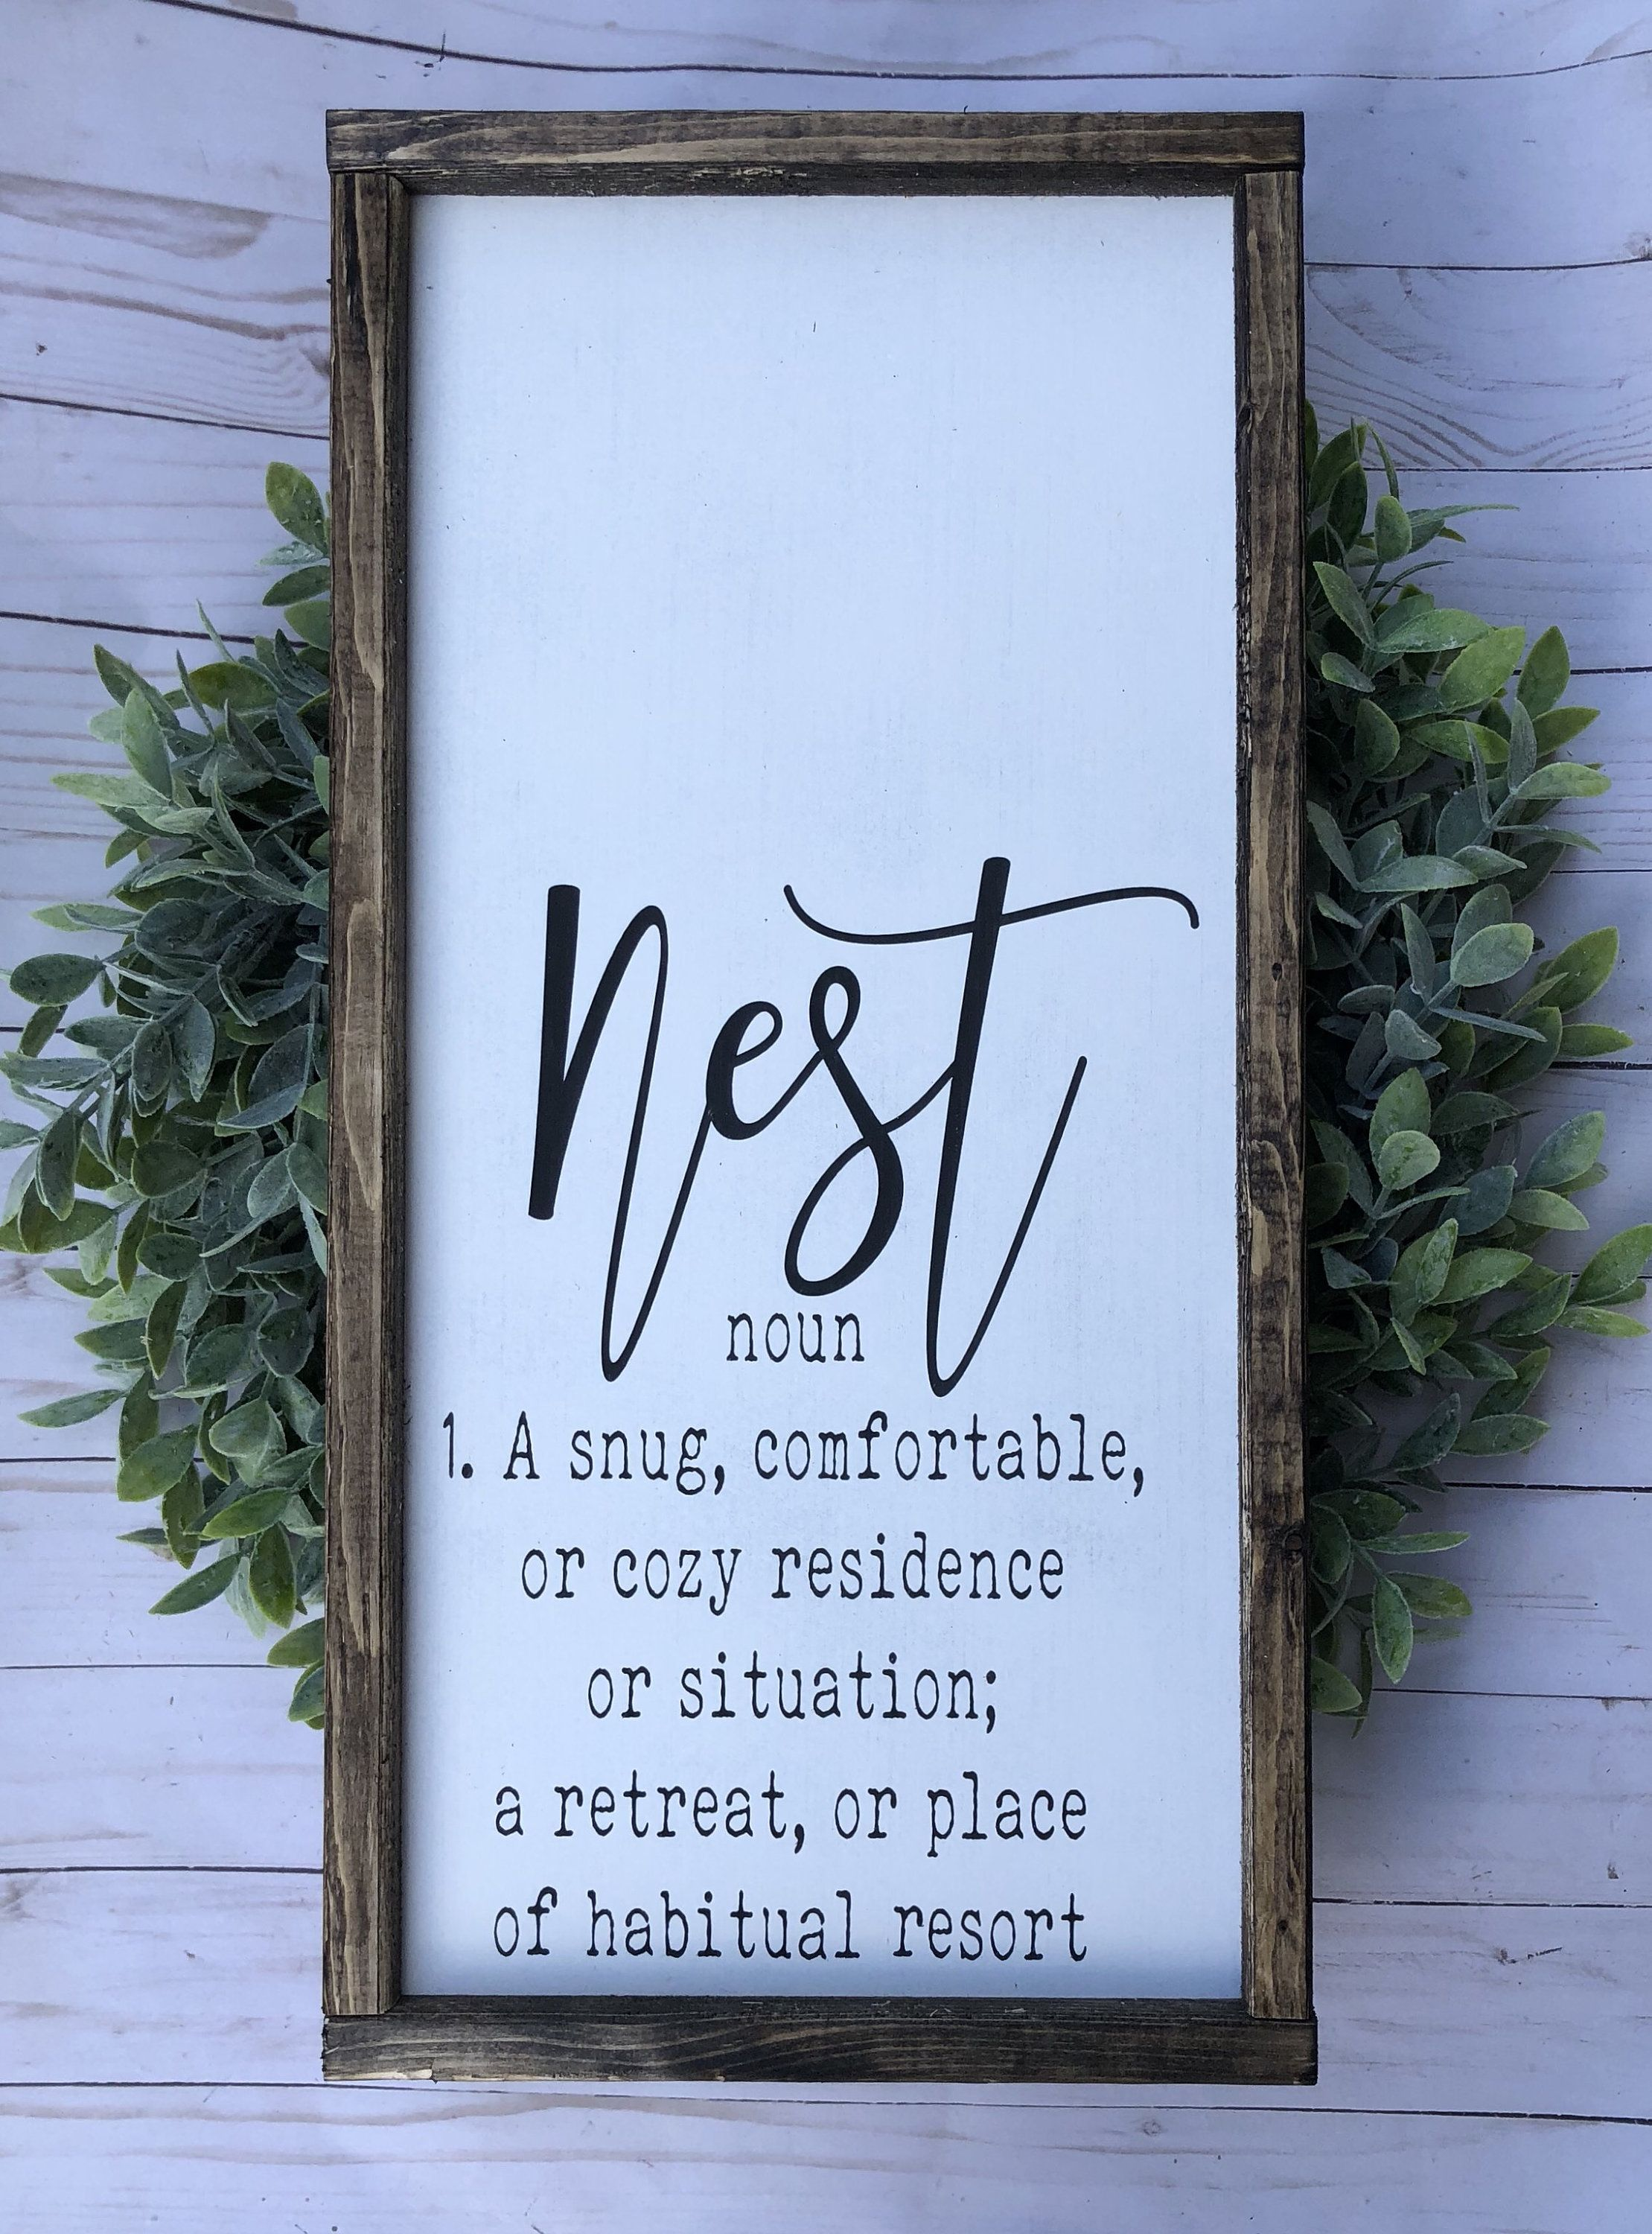 Signs With Quotes Farmhouse Decor Signs For Home Wall Decor Framed Wood Signs Farmhouse Sign Living Room Decor Nest Sign Wood Frame Sign Frame Wall Decor Wood Signs